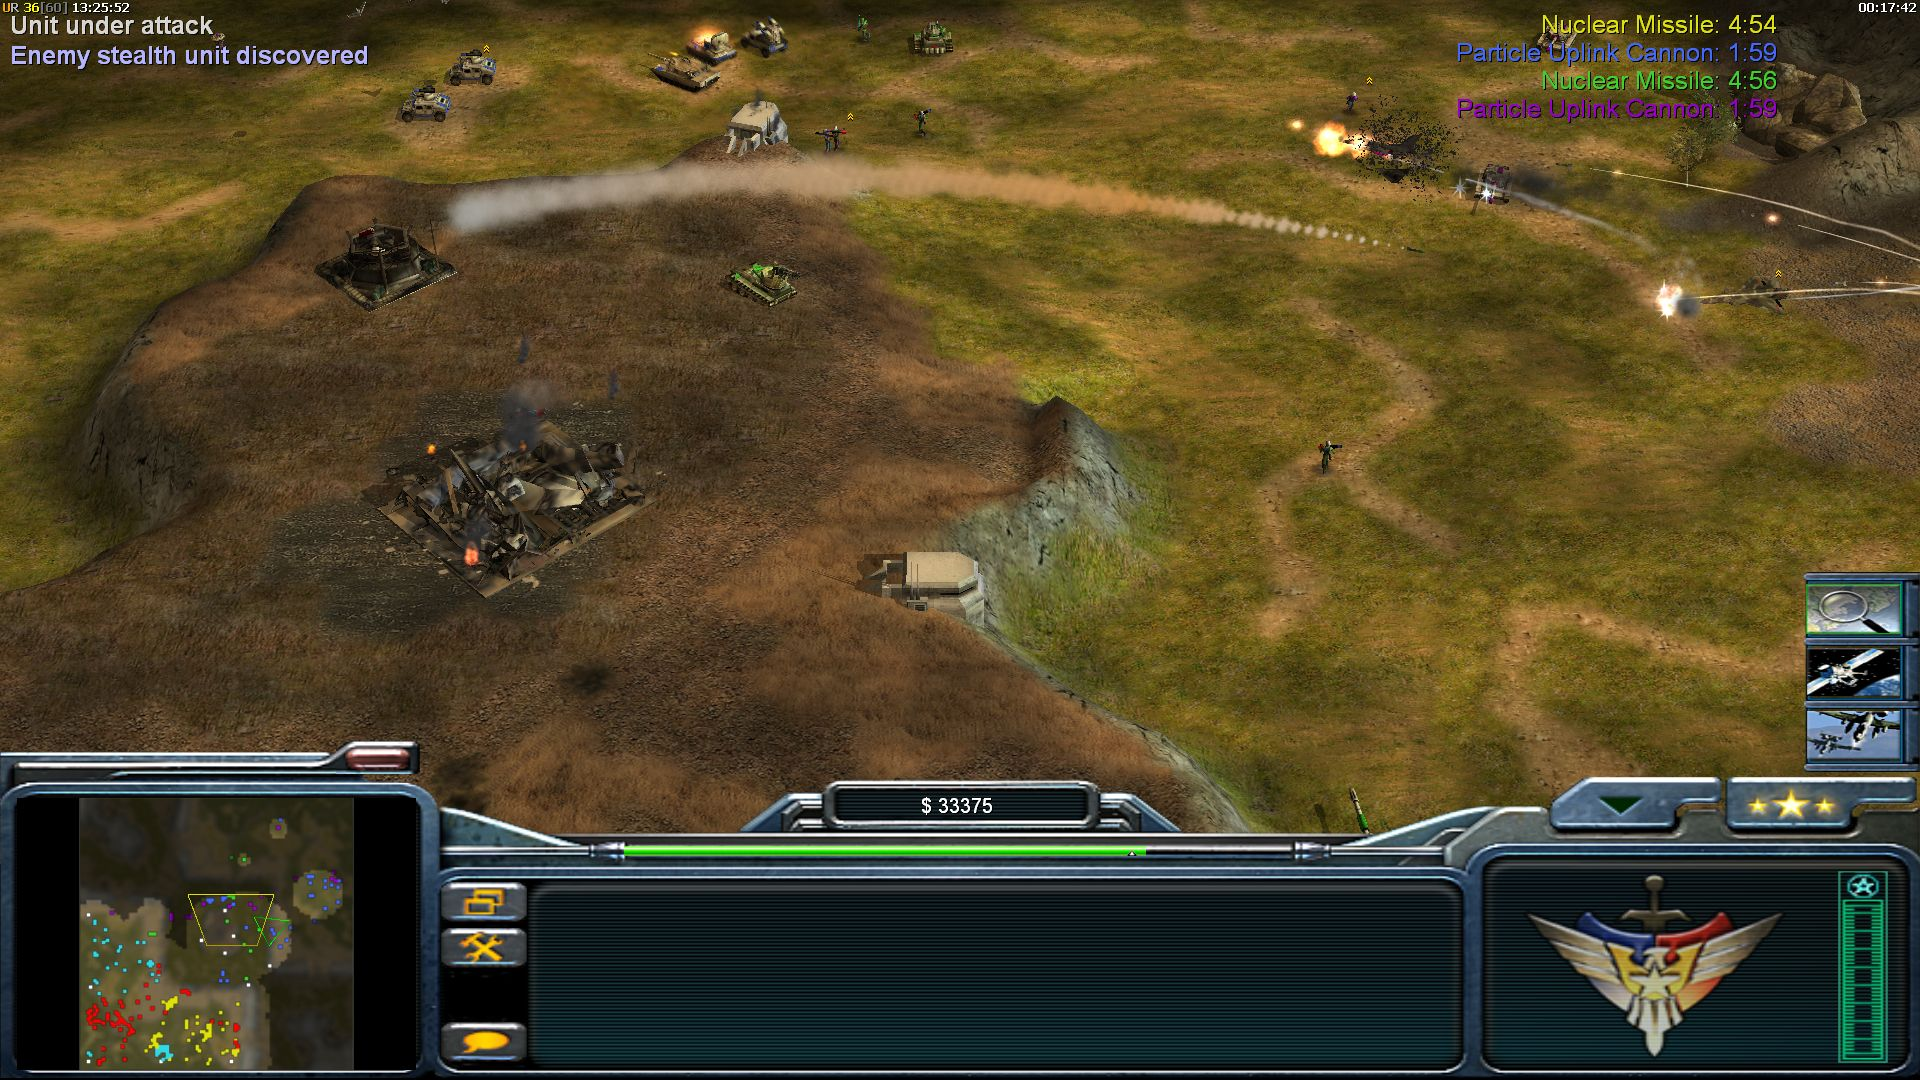 Missile exhaust image - earth conflict mod for cc: generals zero hour